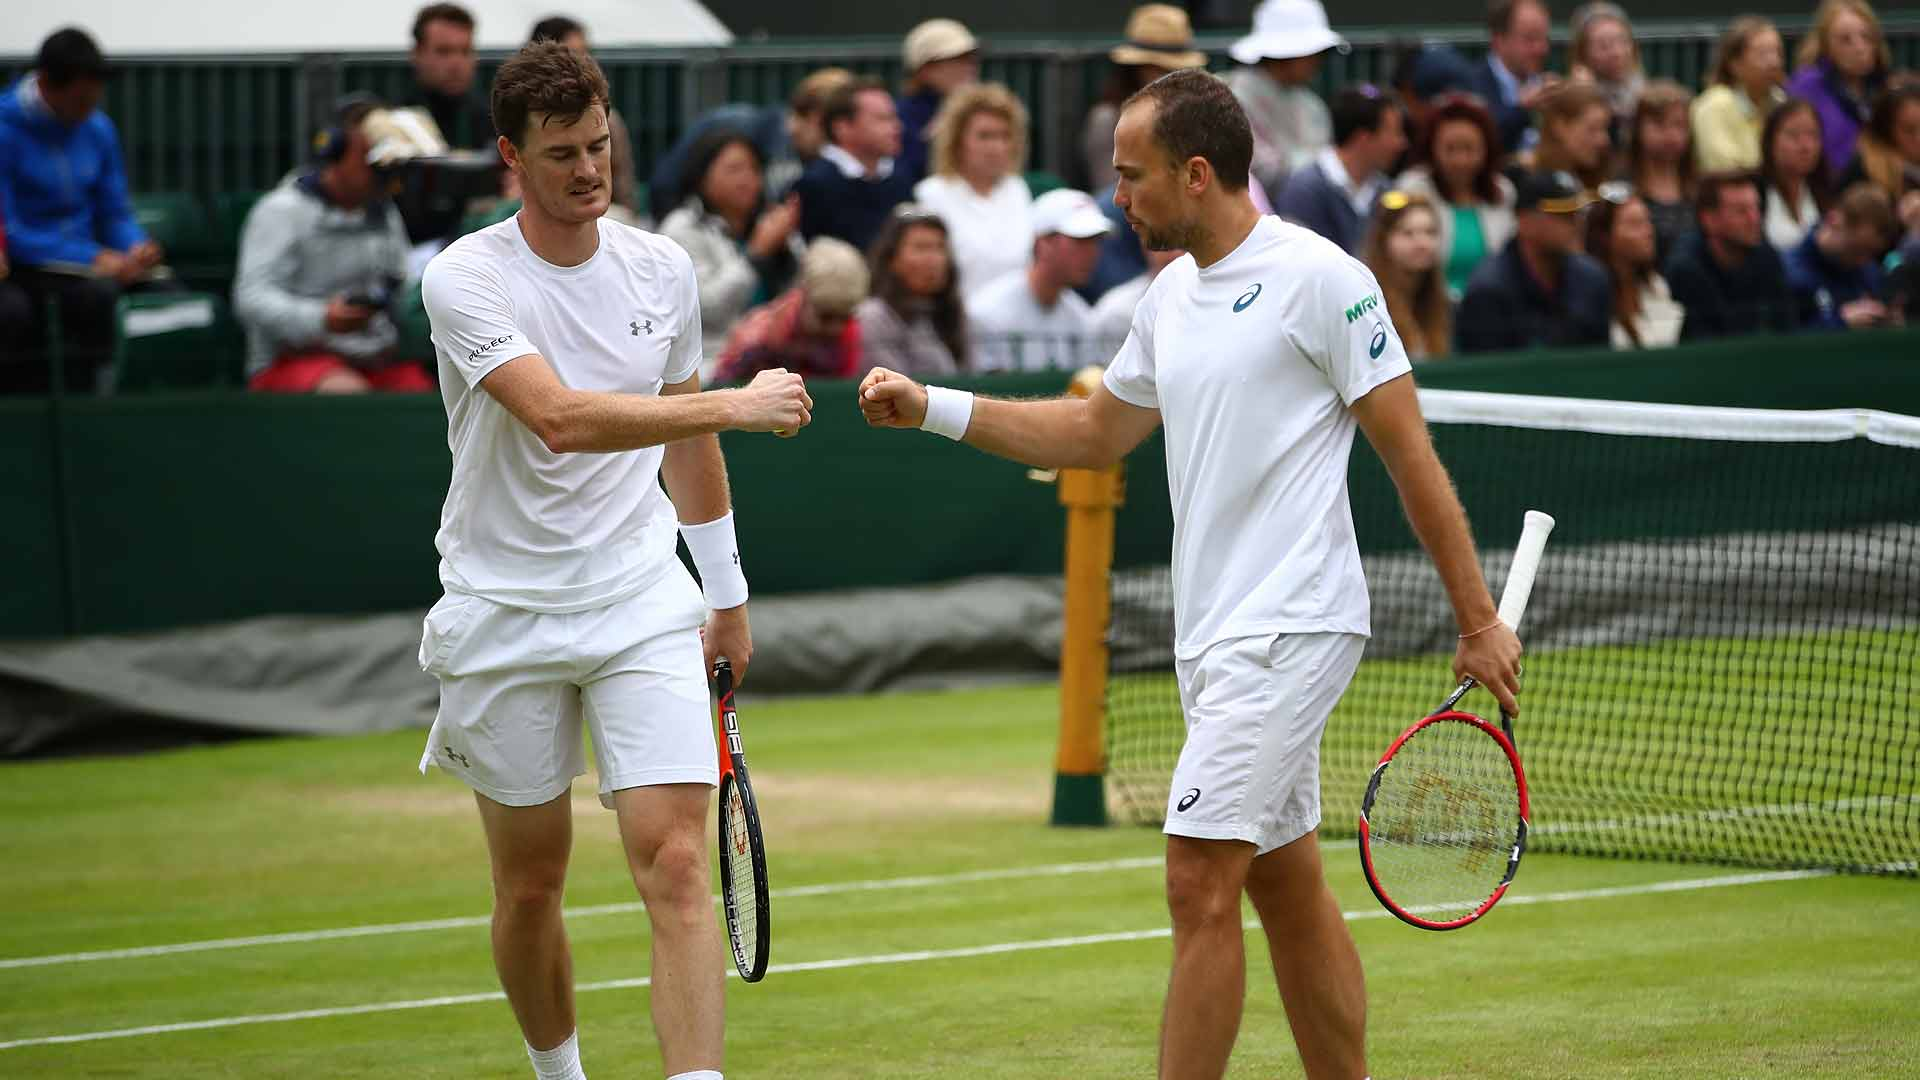 Jamie Murray and Bruno Soares are still in contention for their first Wimbledon title.